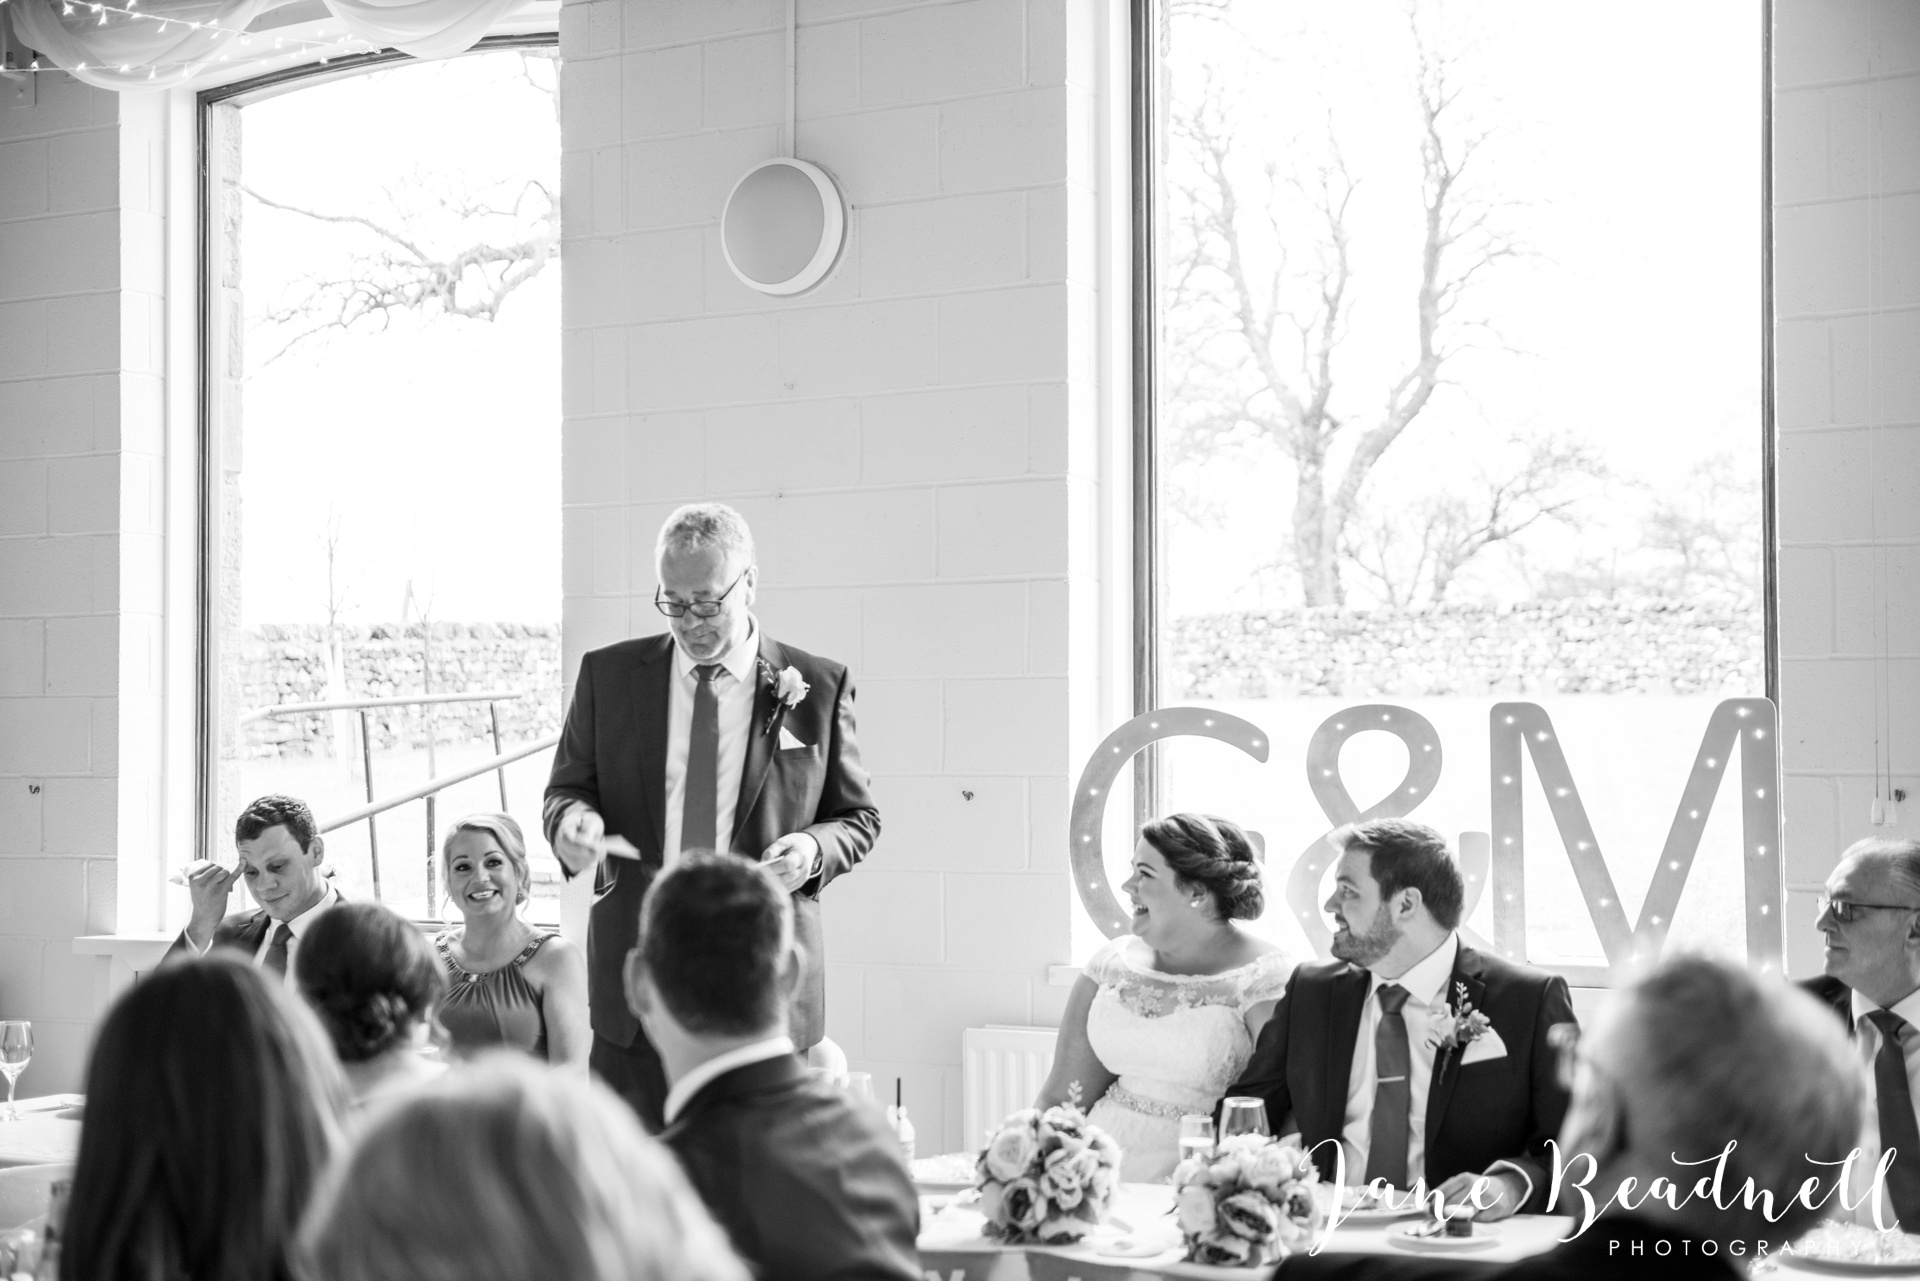 Cracoe Village Hall Wedding Photography by Jane Beadnell Photography fine art wedding photographer Yorkshire_0064